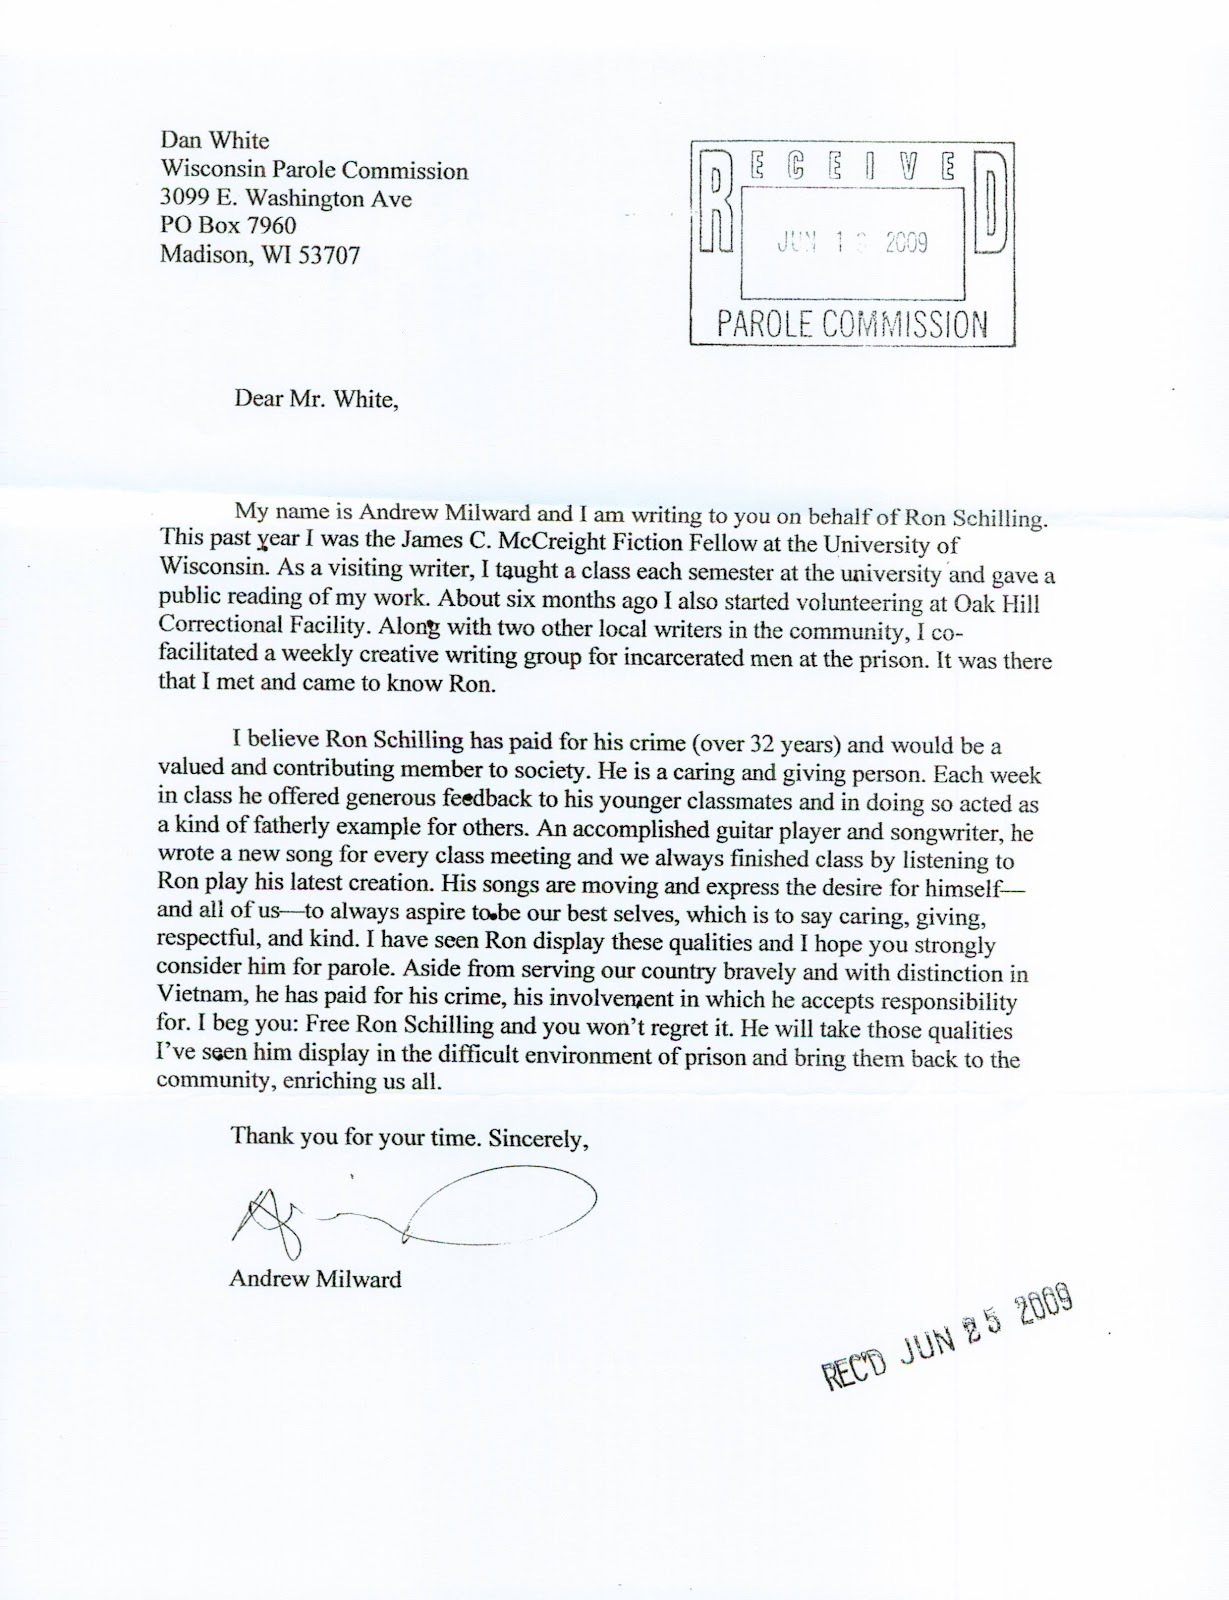 recommendation letter for parole hearing - Romeo.landinez.co on sample prison letters, sample of victim impact letters, examples of pardon request letters,